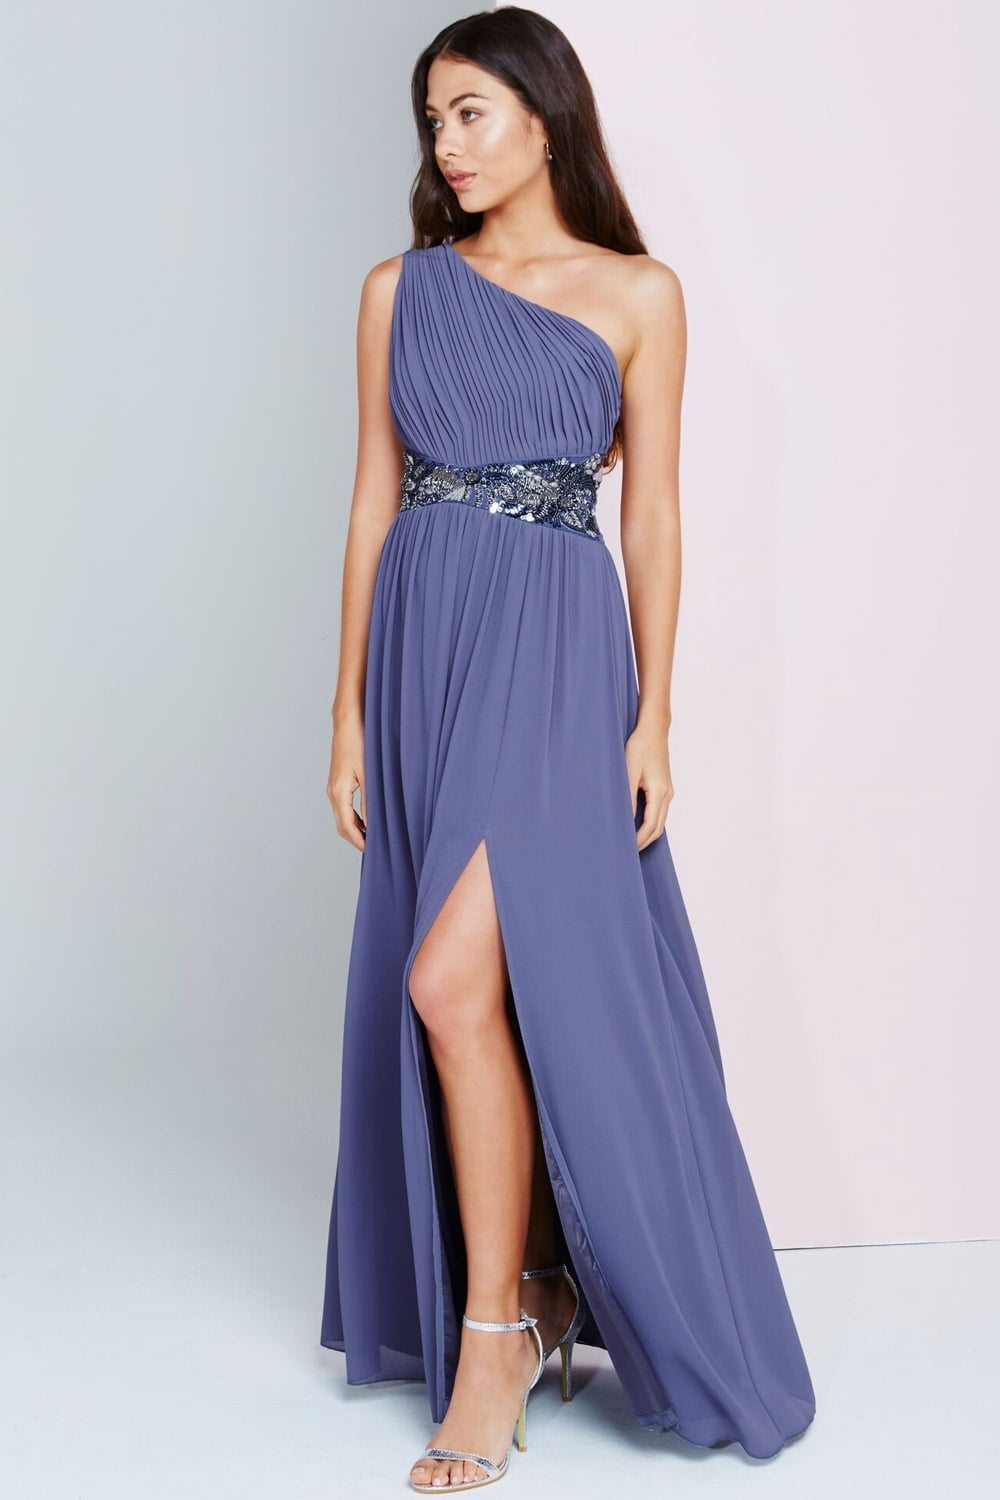 Little Mistress Lavender Grey One Shoulder Maxi Dress - Little ...